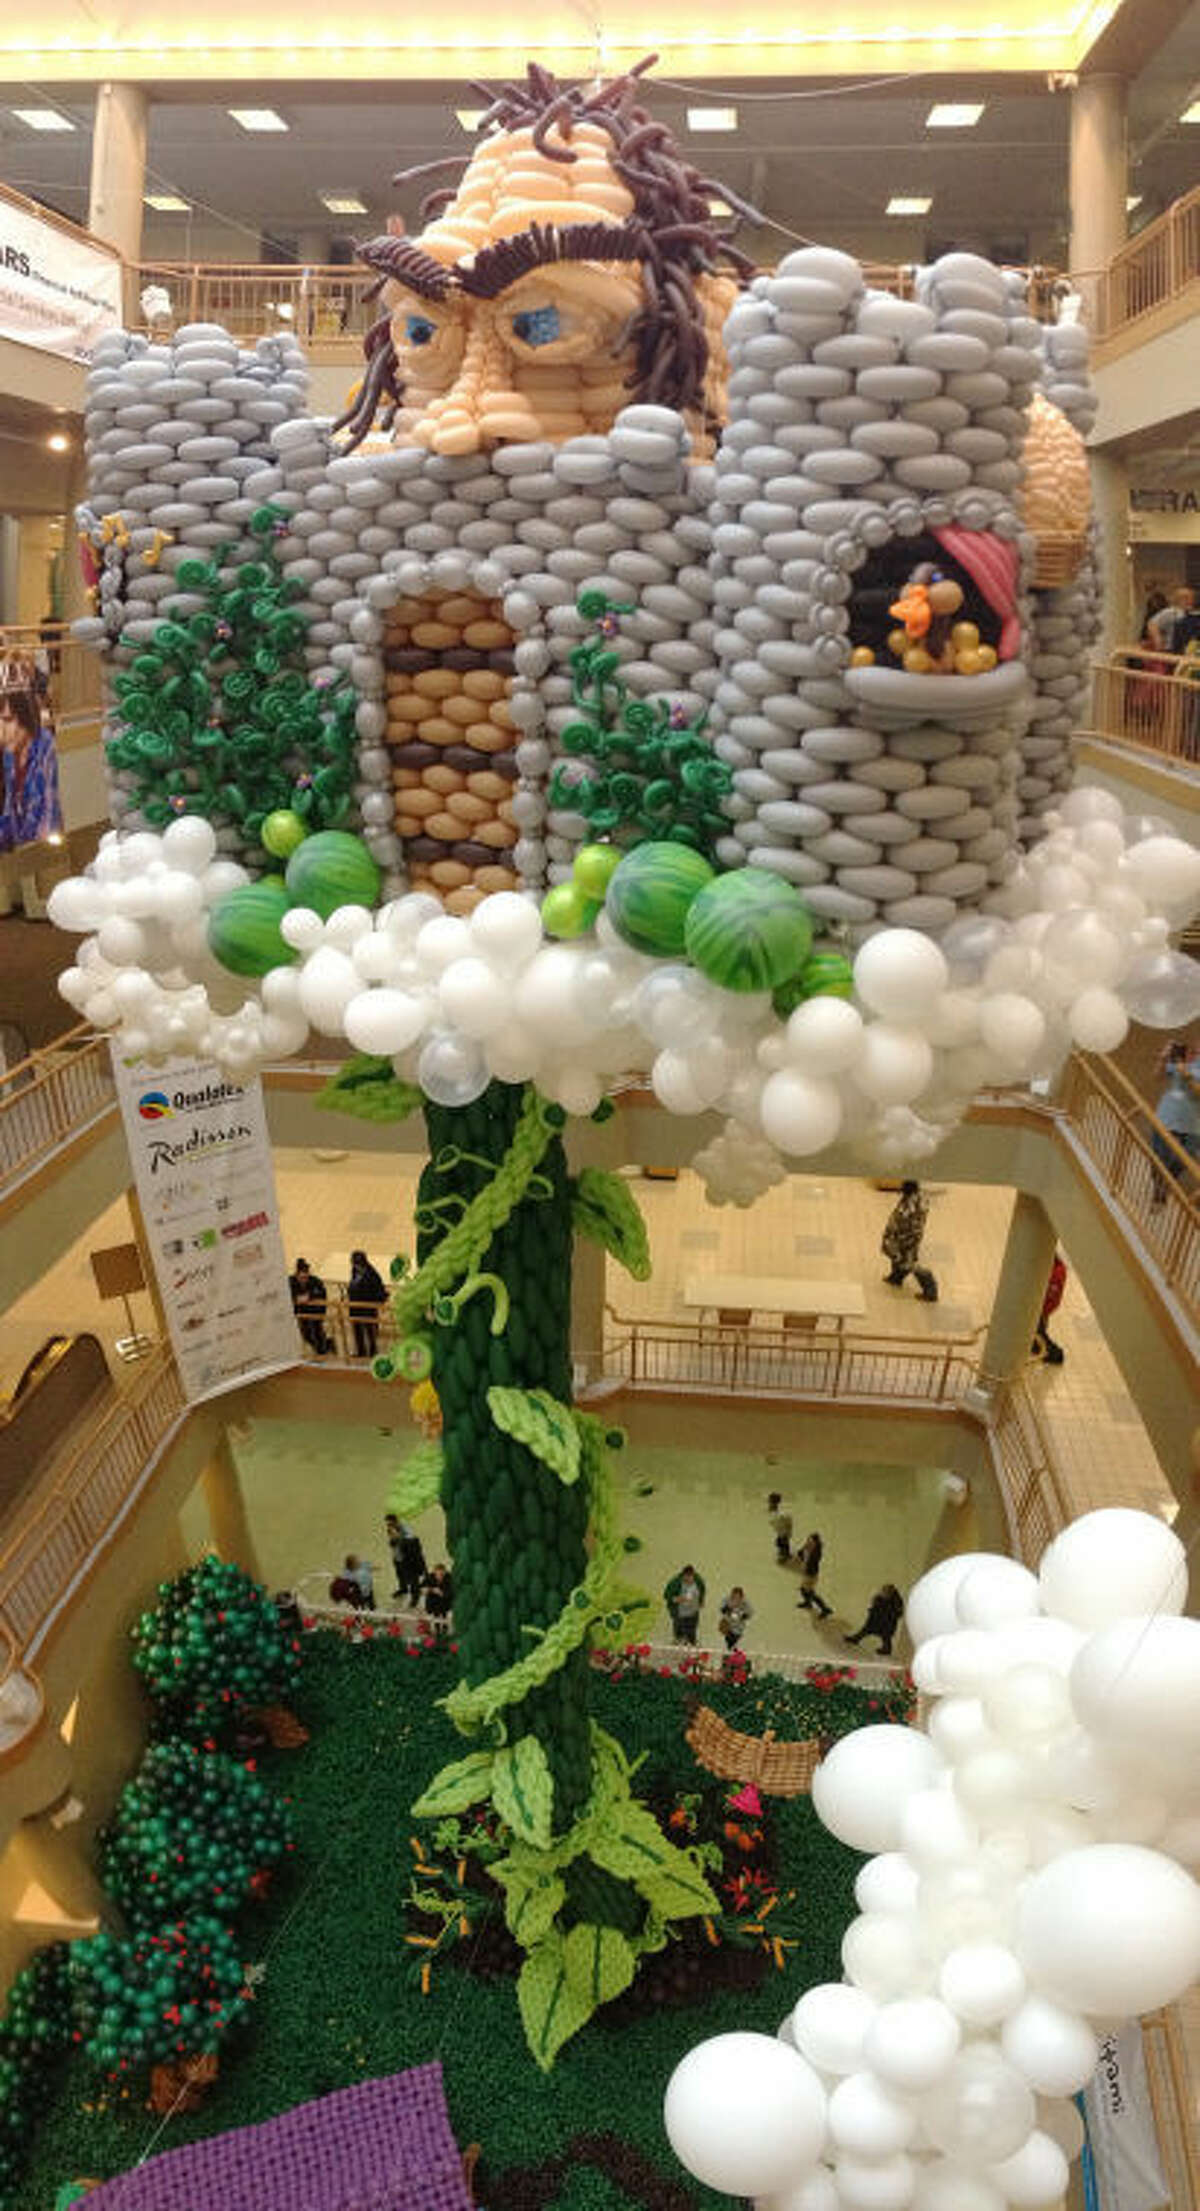 """Contributed photo The main piece of art of the exhibit """"Balloon Manor 2014: The VERY Tall Tale of Jack and his Beanstalk"""" in Rochester, NY?•s historic, downtown Sibley Building atrium, earlier this year."""